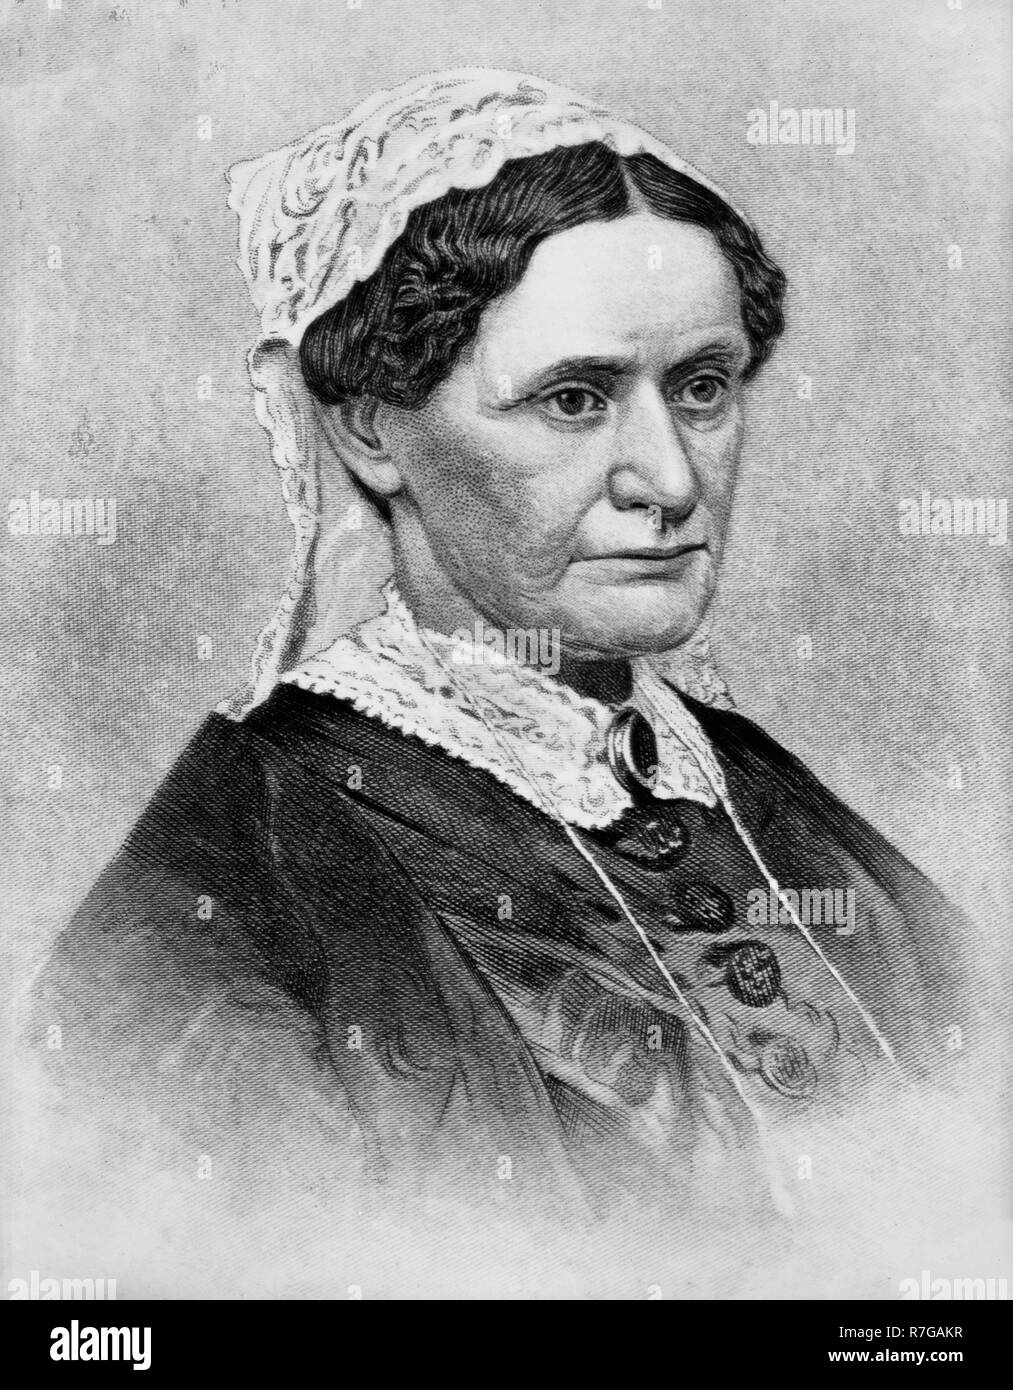 Eliza McCardle Johnson (October 4, 1810 - firstJanuary 15, 1876) was the First Lady of the United States, the Second Lady of the United States, and the wife of Andrew Johnson, the 17th President of the United States. - Stock Image